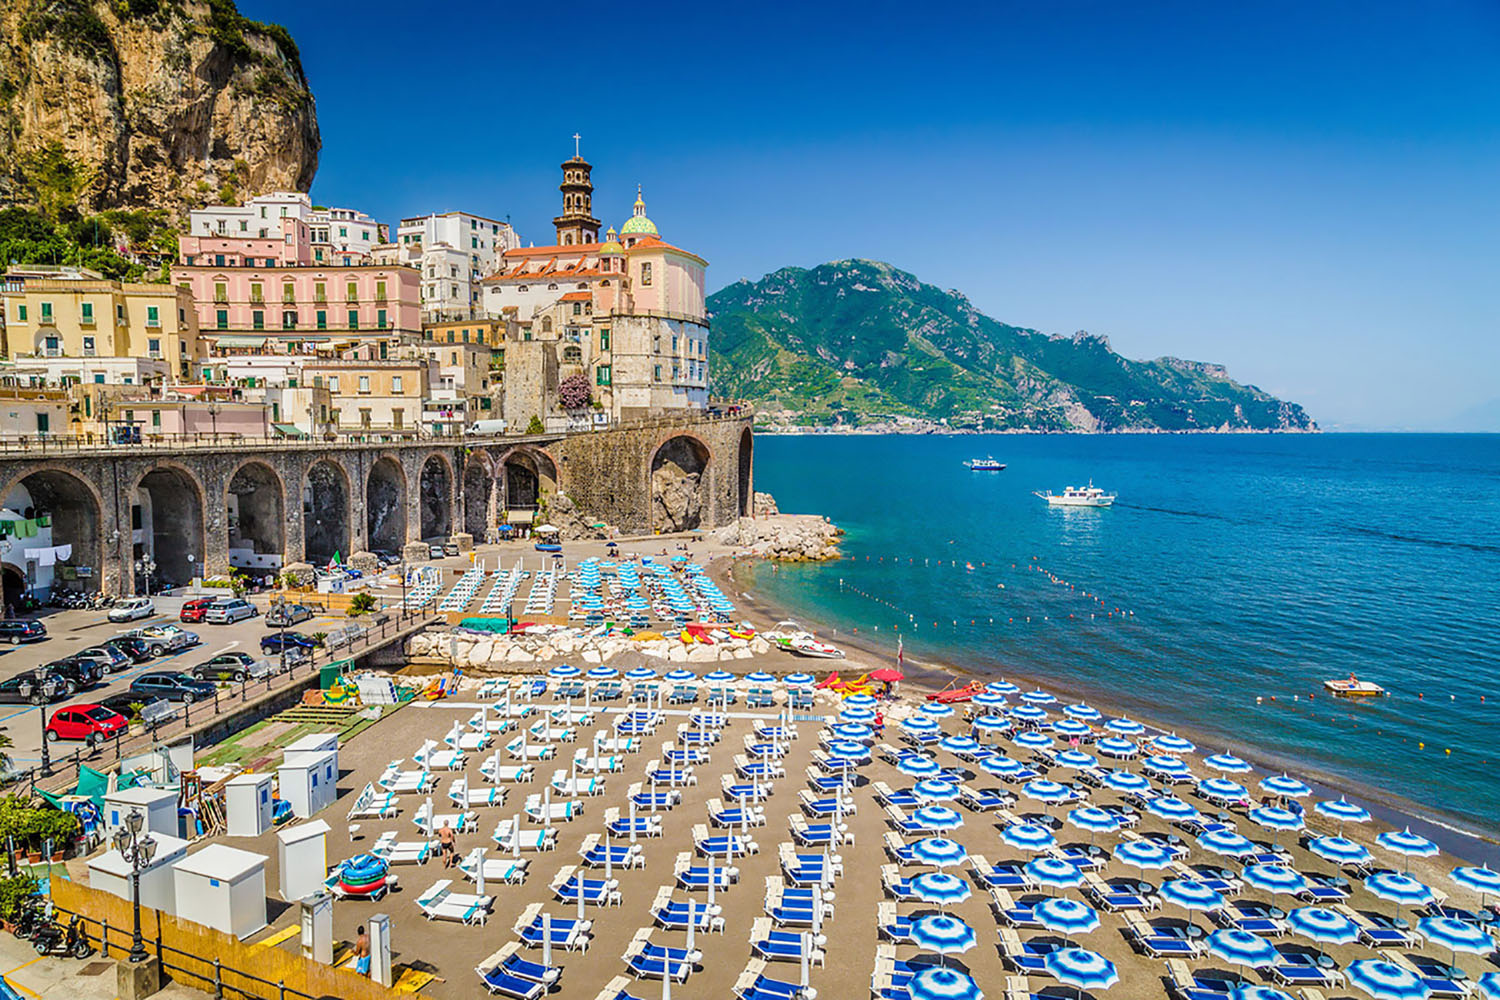 After Sorrento, Amalfi is the largest town along the Coast. It's a picturesque town with a pebble beach, trendy restaurants, and a striking cathedral.